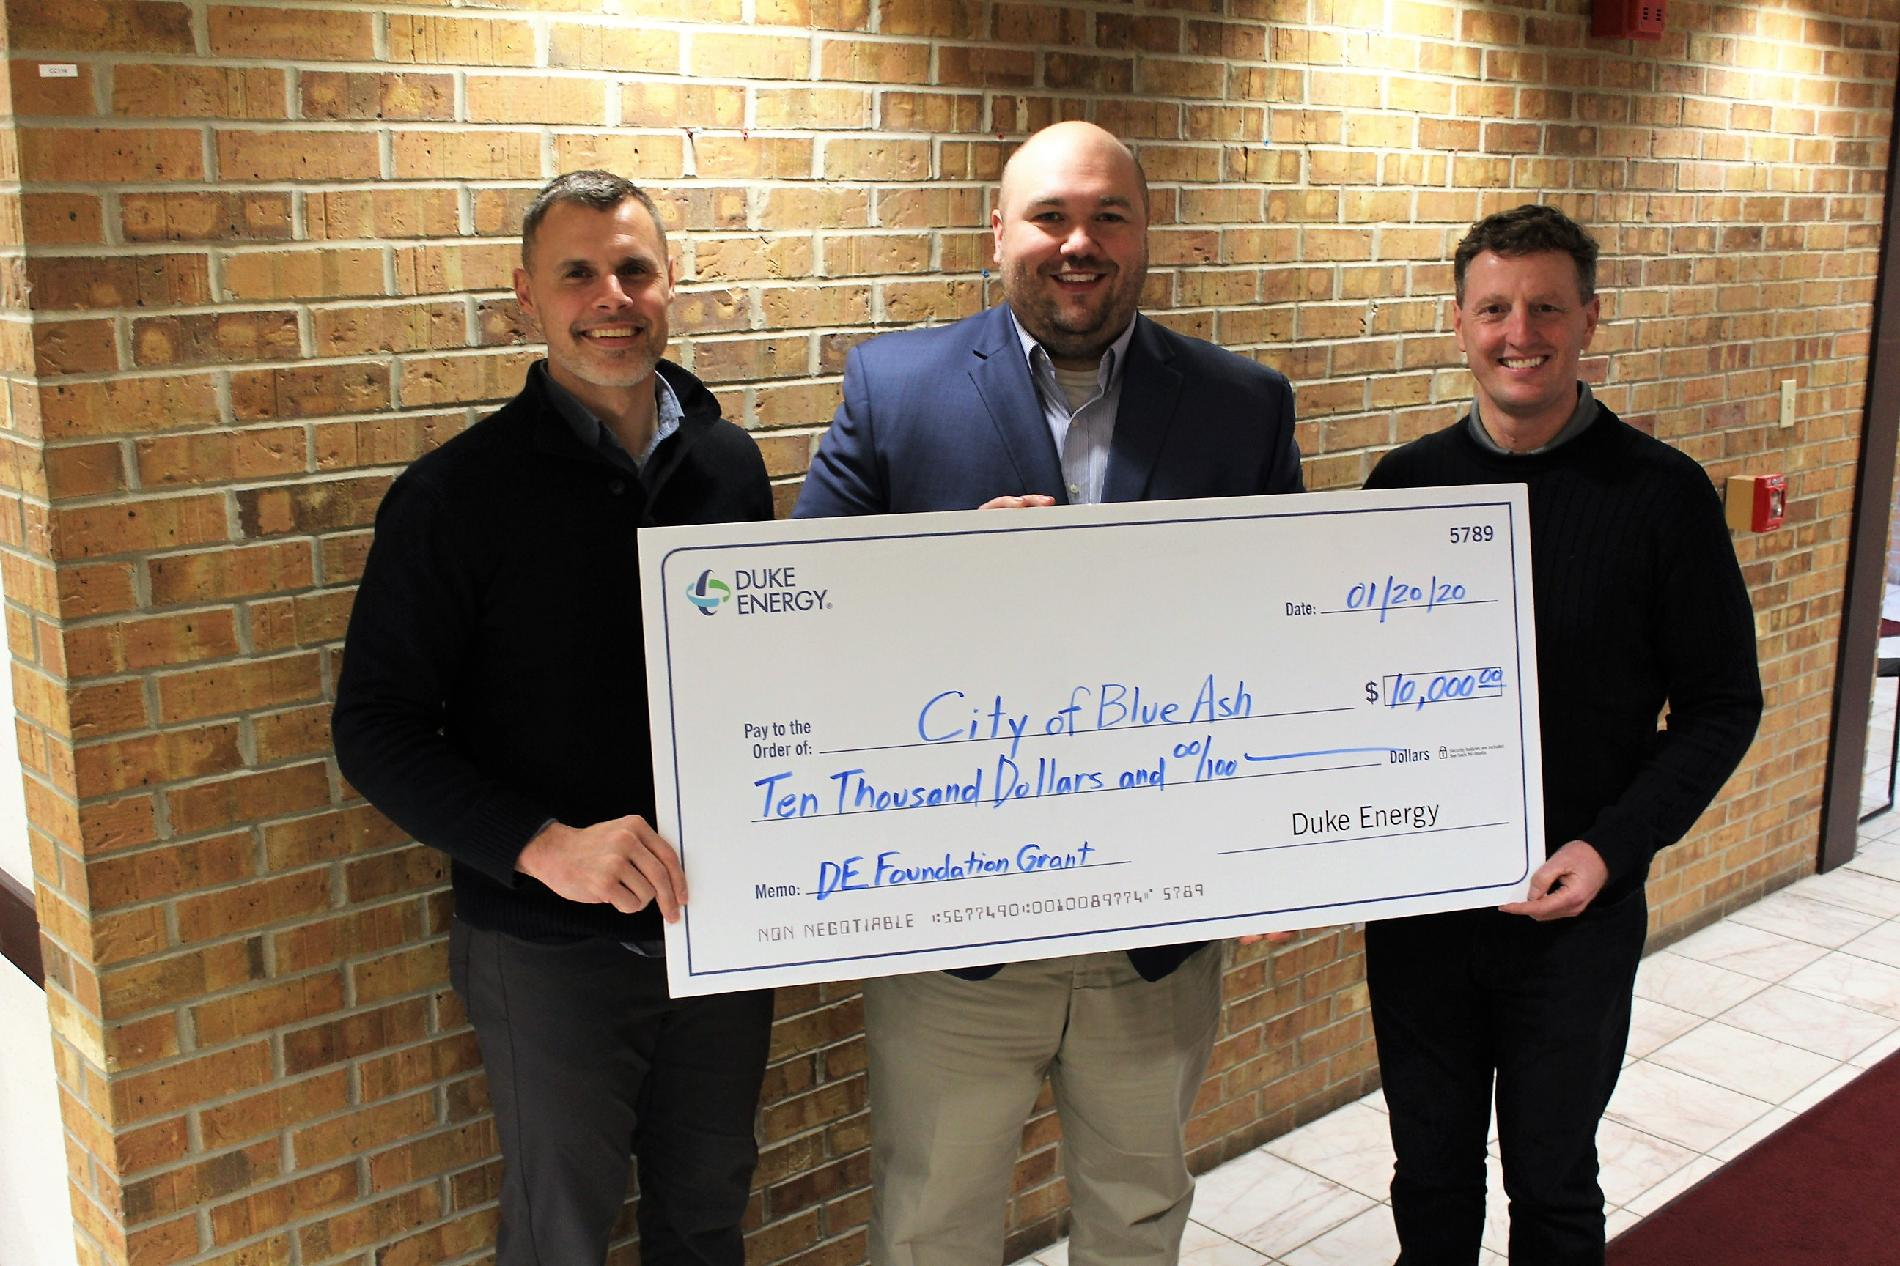 Blue Ash Parks and Recreation Director Brian Kruse, Duke Energy Sr. Government Affairs Specialist J. Chad Shaffer, and Blue Ash City Manager David Waltz hold large grant check